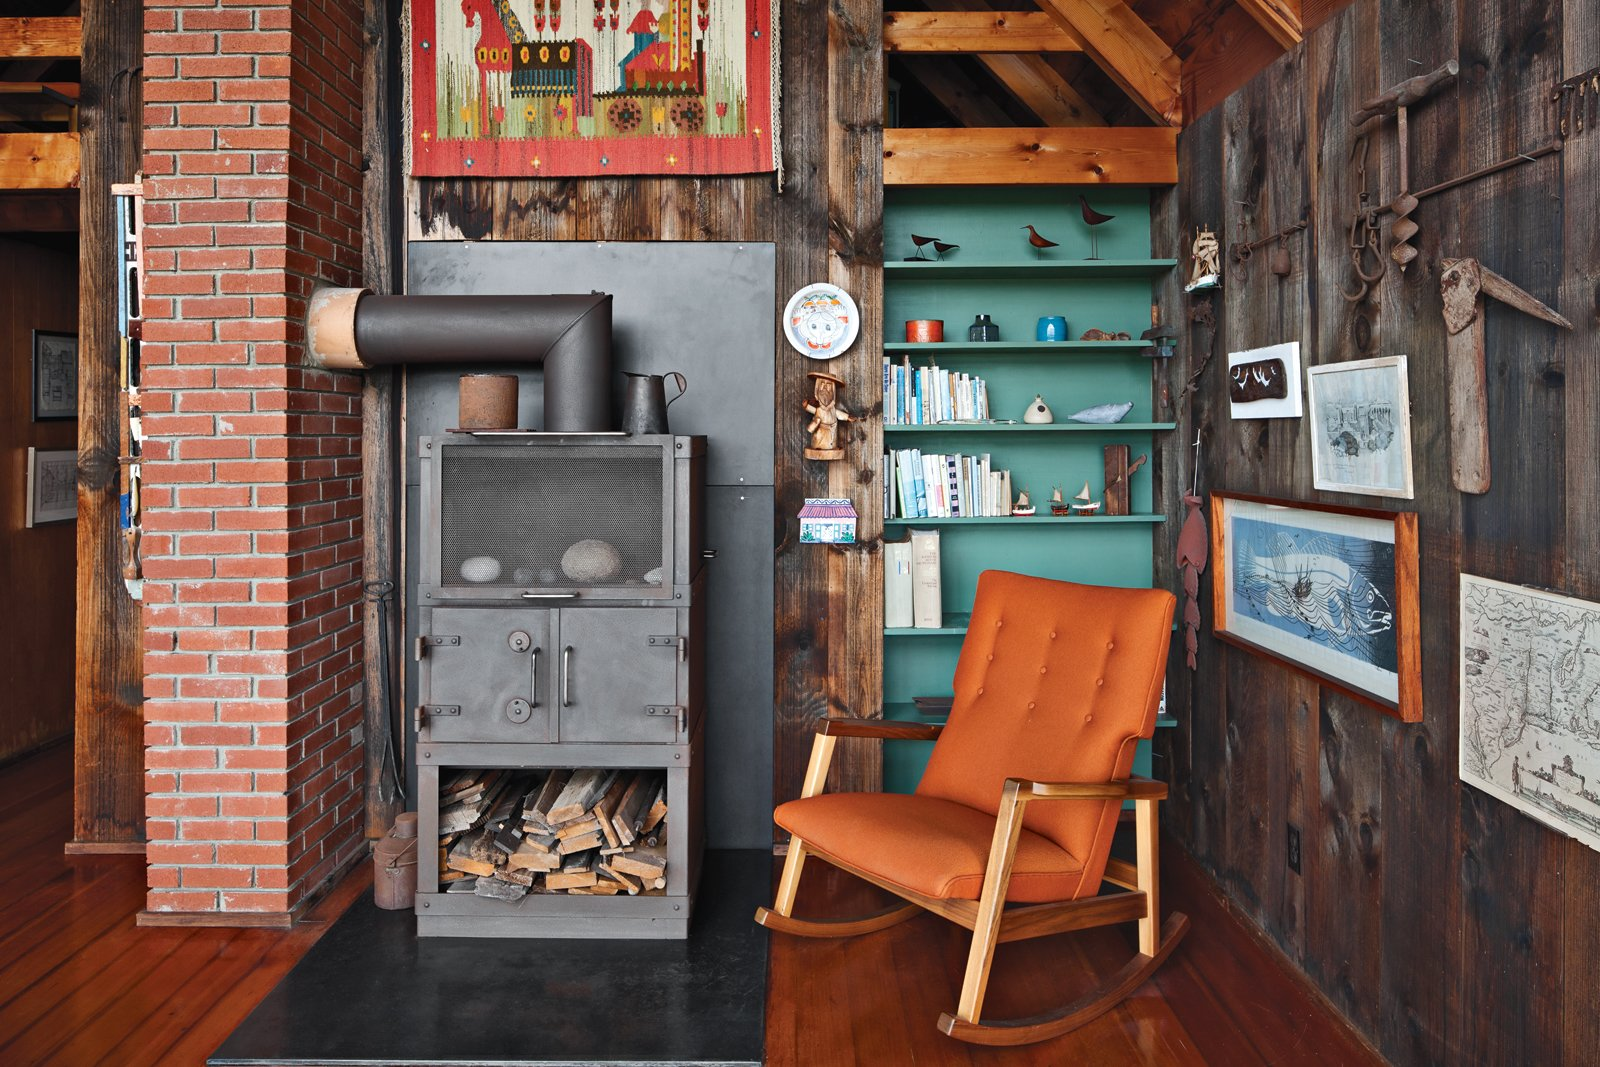 Living Room, Medium Hardwood Floor, Chair, Wood Burning Fireplace, and Shelves Inside the house, a relatively new Rais wood-burning stove is next to a Risom Rocker from Design Within Reach, a 2009 piece from the designer.  Photo 3 of 13 in Jens Risom's Block Island Family Retreat